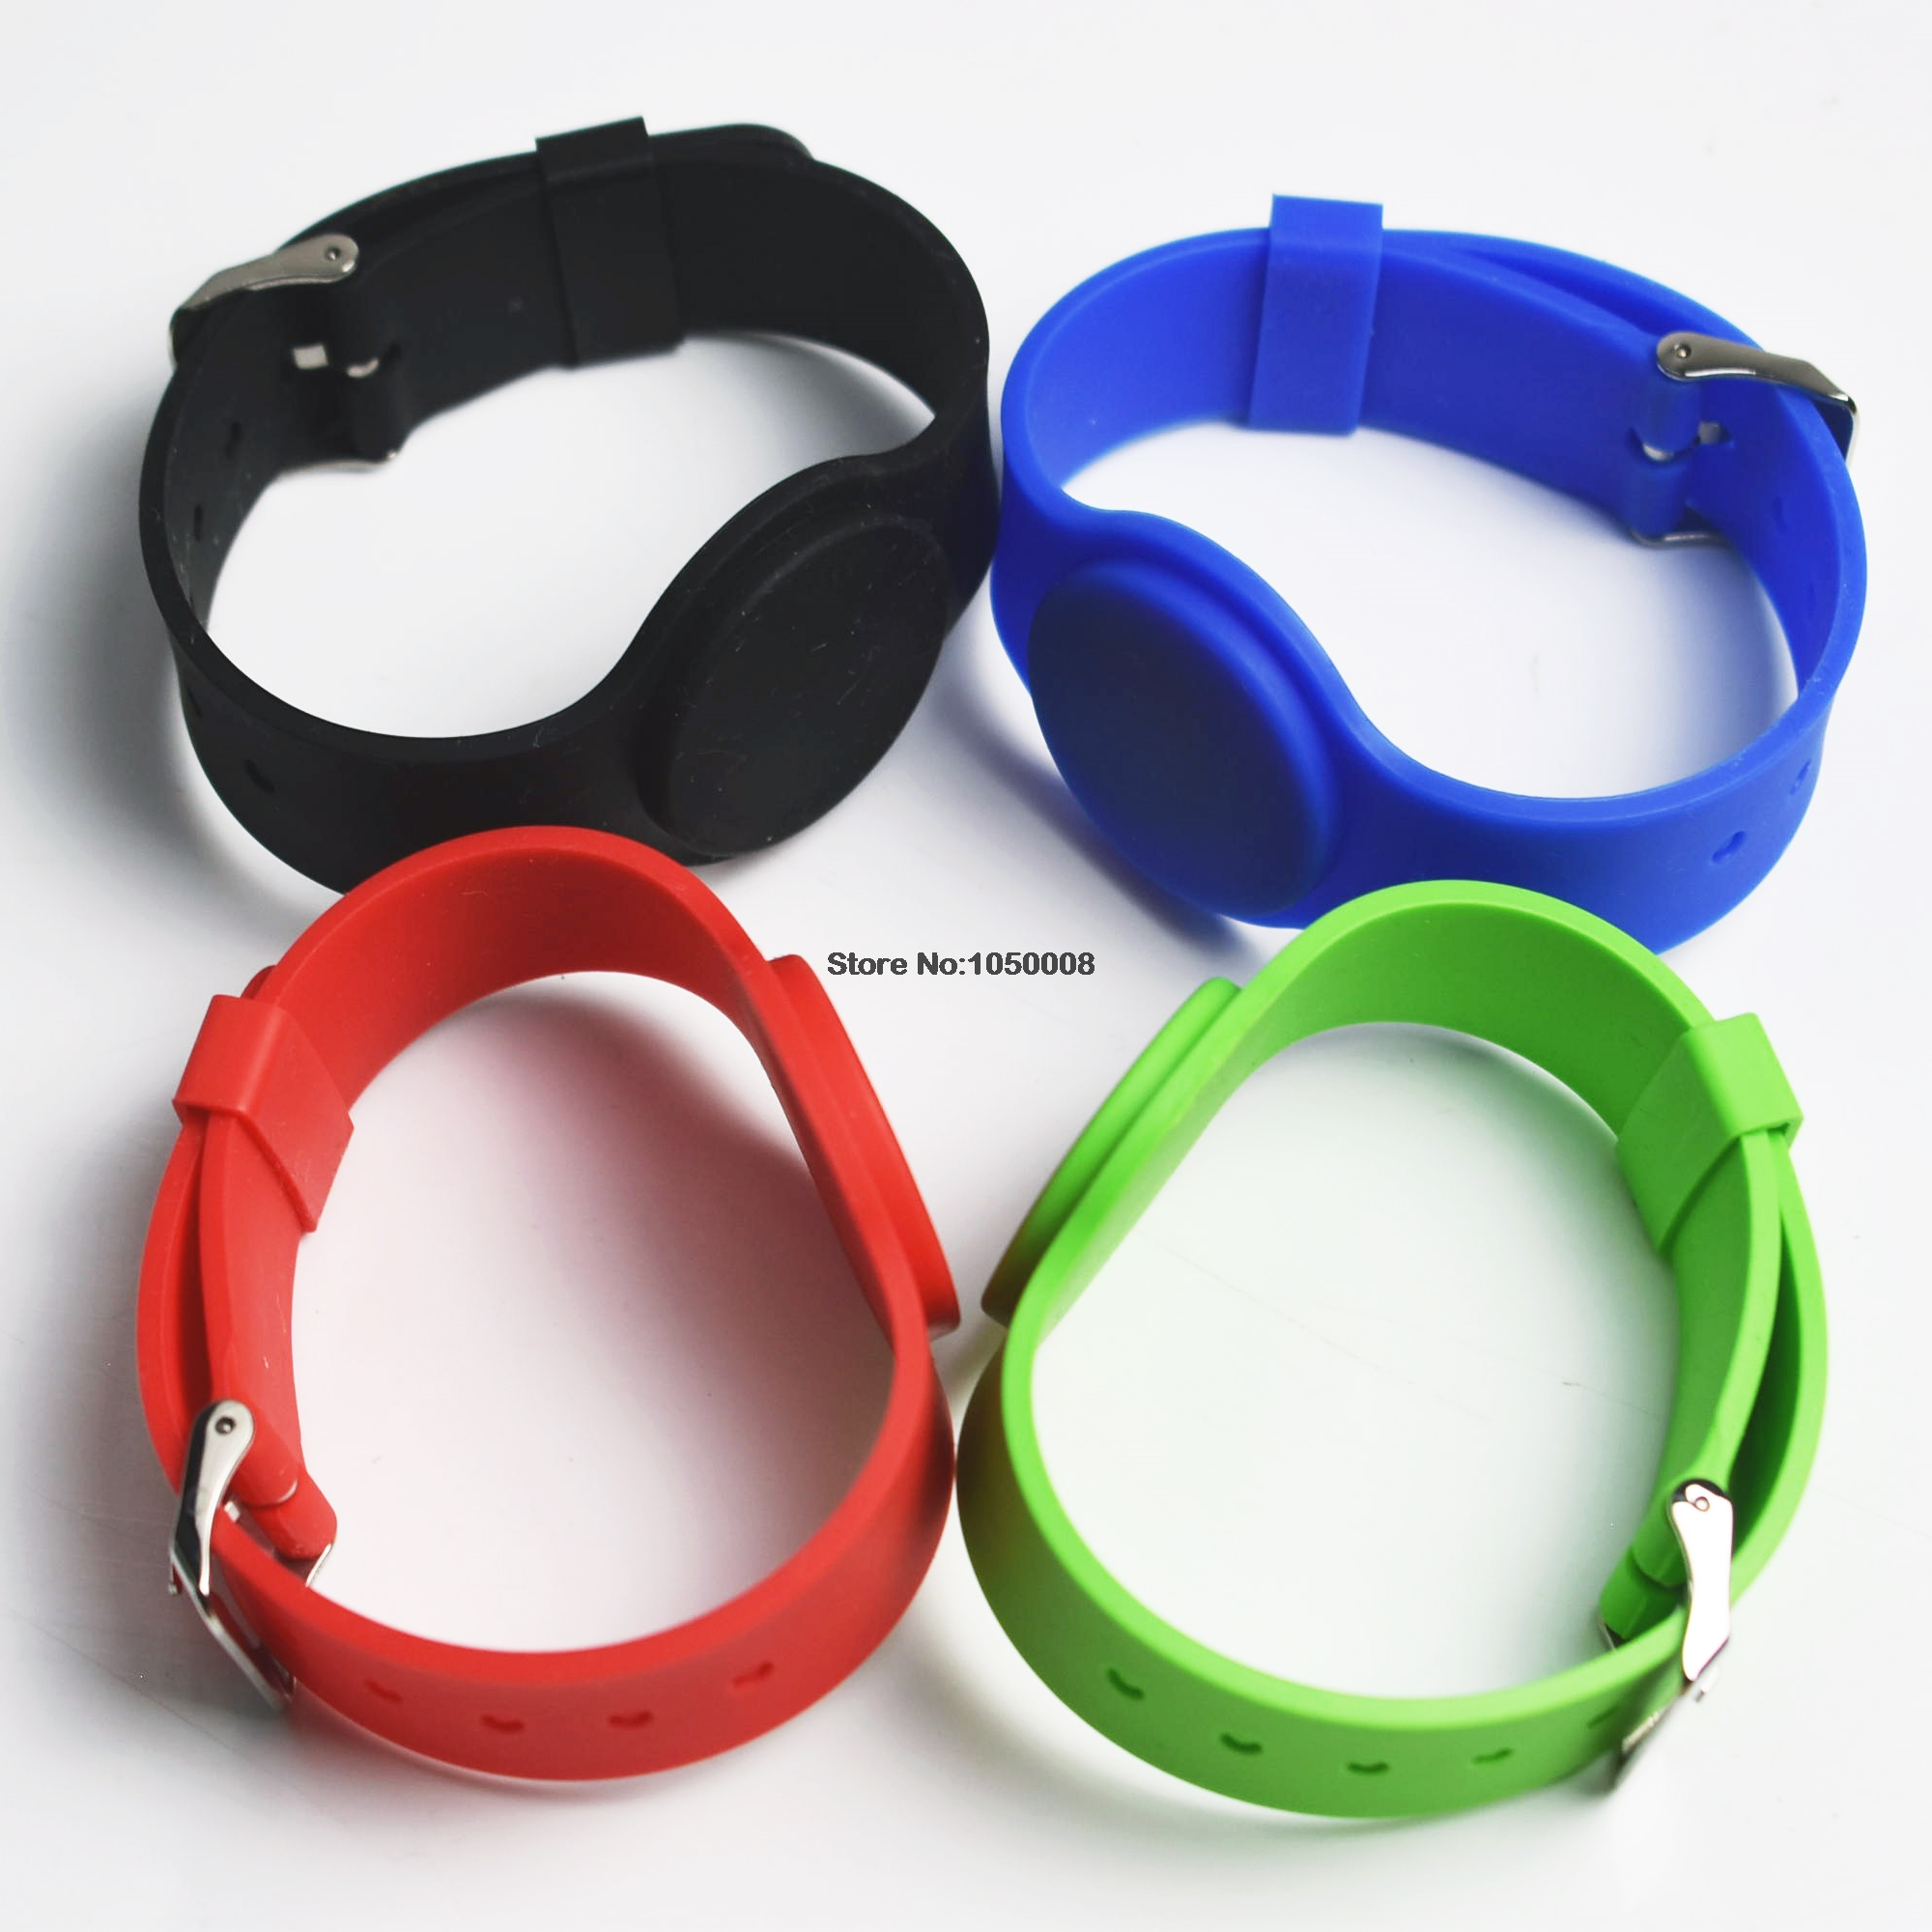 product fob smart key promotional silicone wristband hand lsojrlyeanva bracelet rfid rubber as nfc china